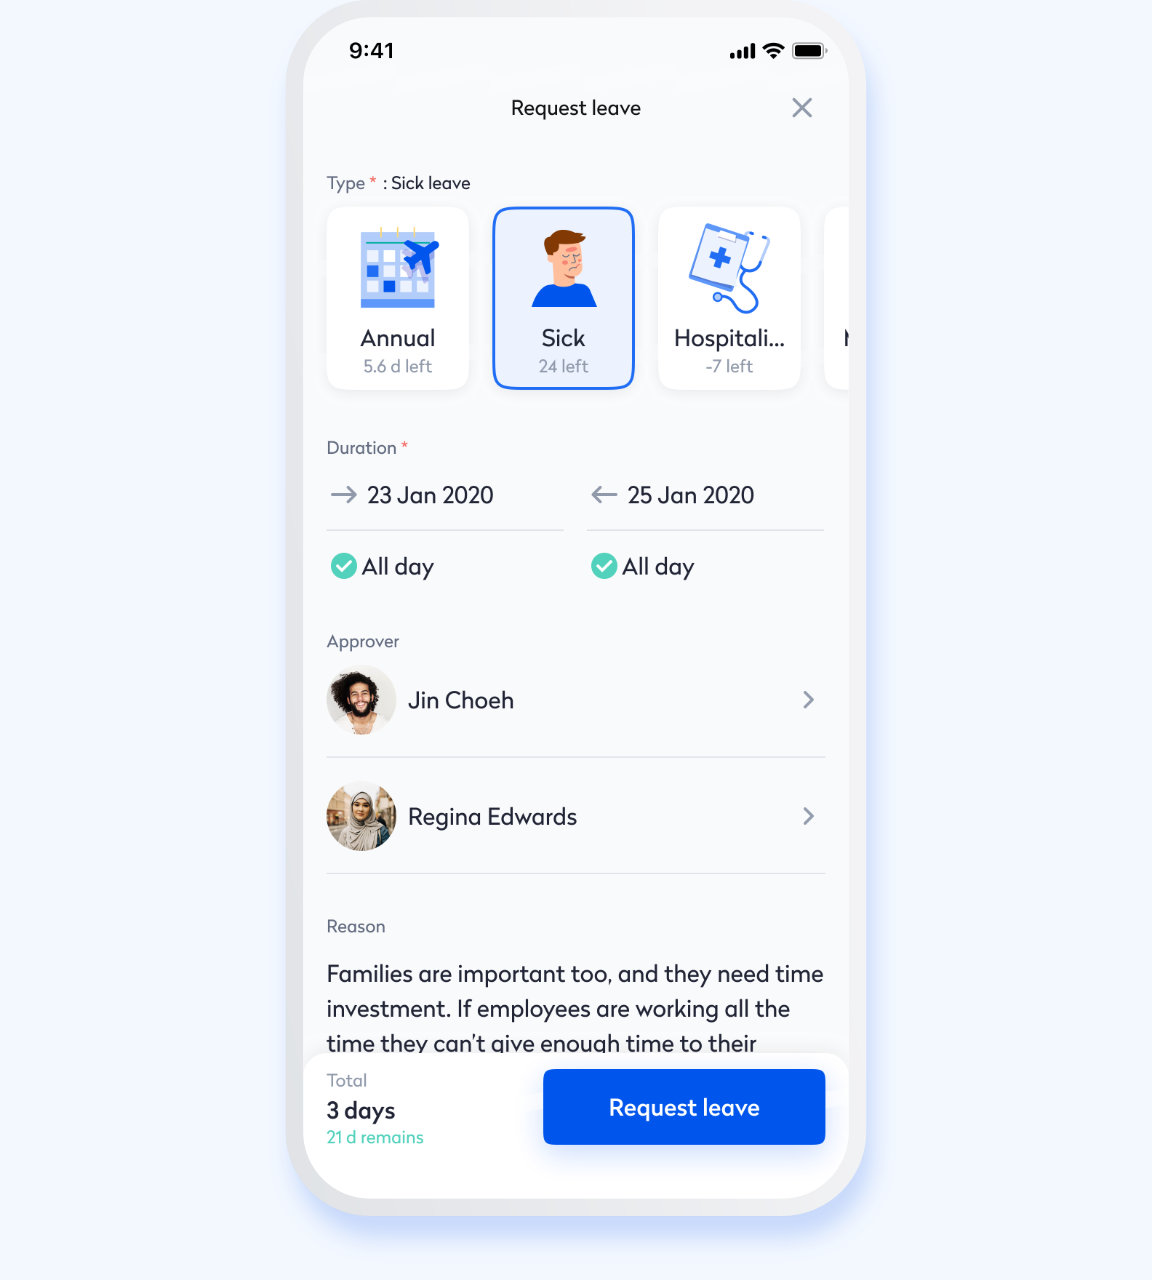 Swingvy mobile HR app view of employee leave application process